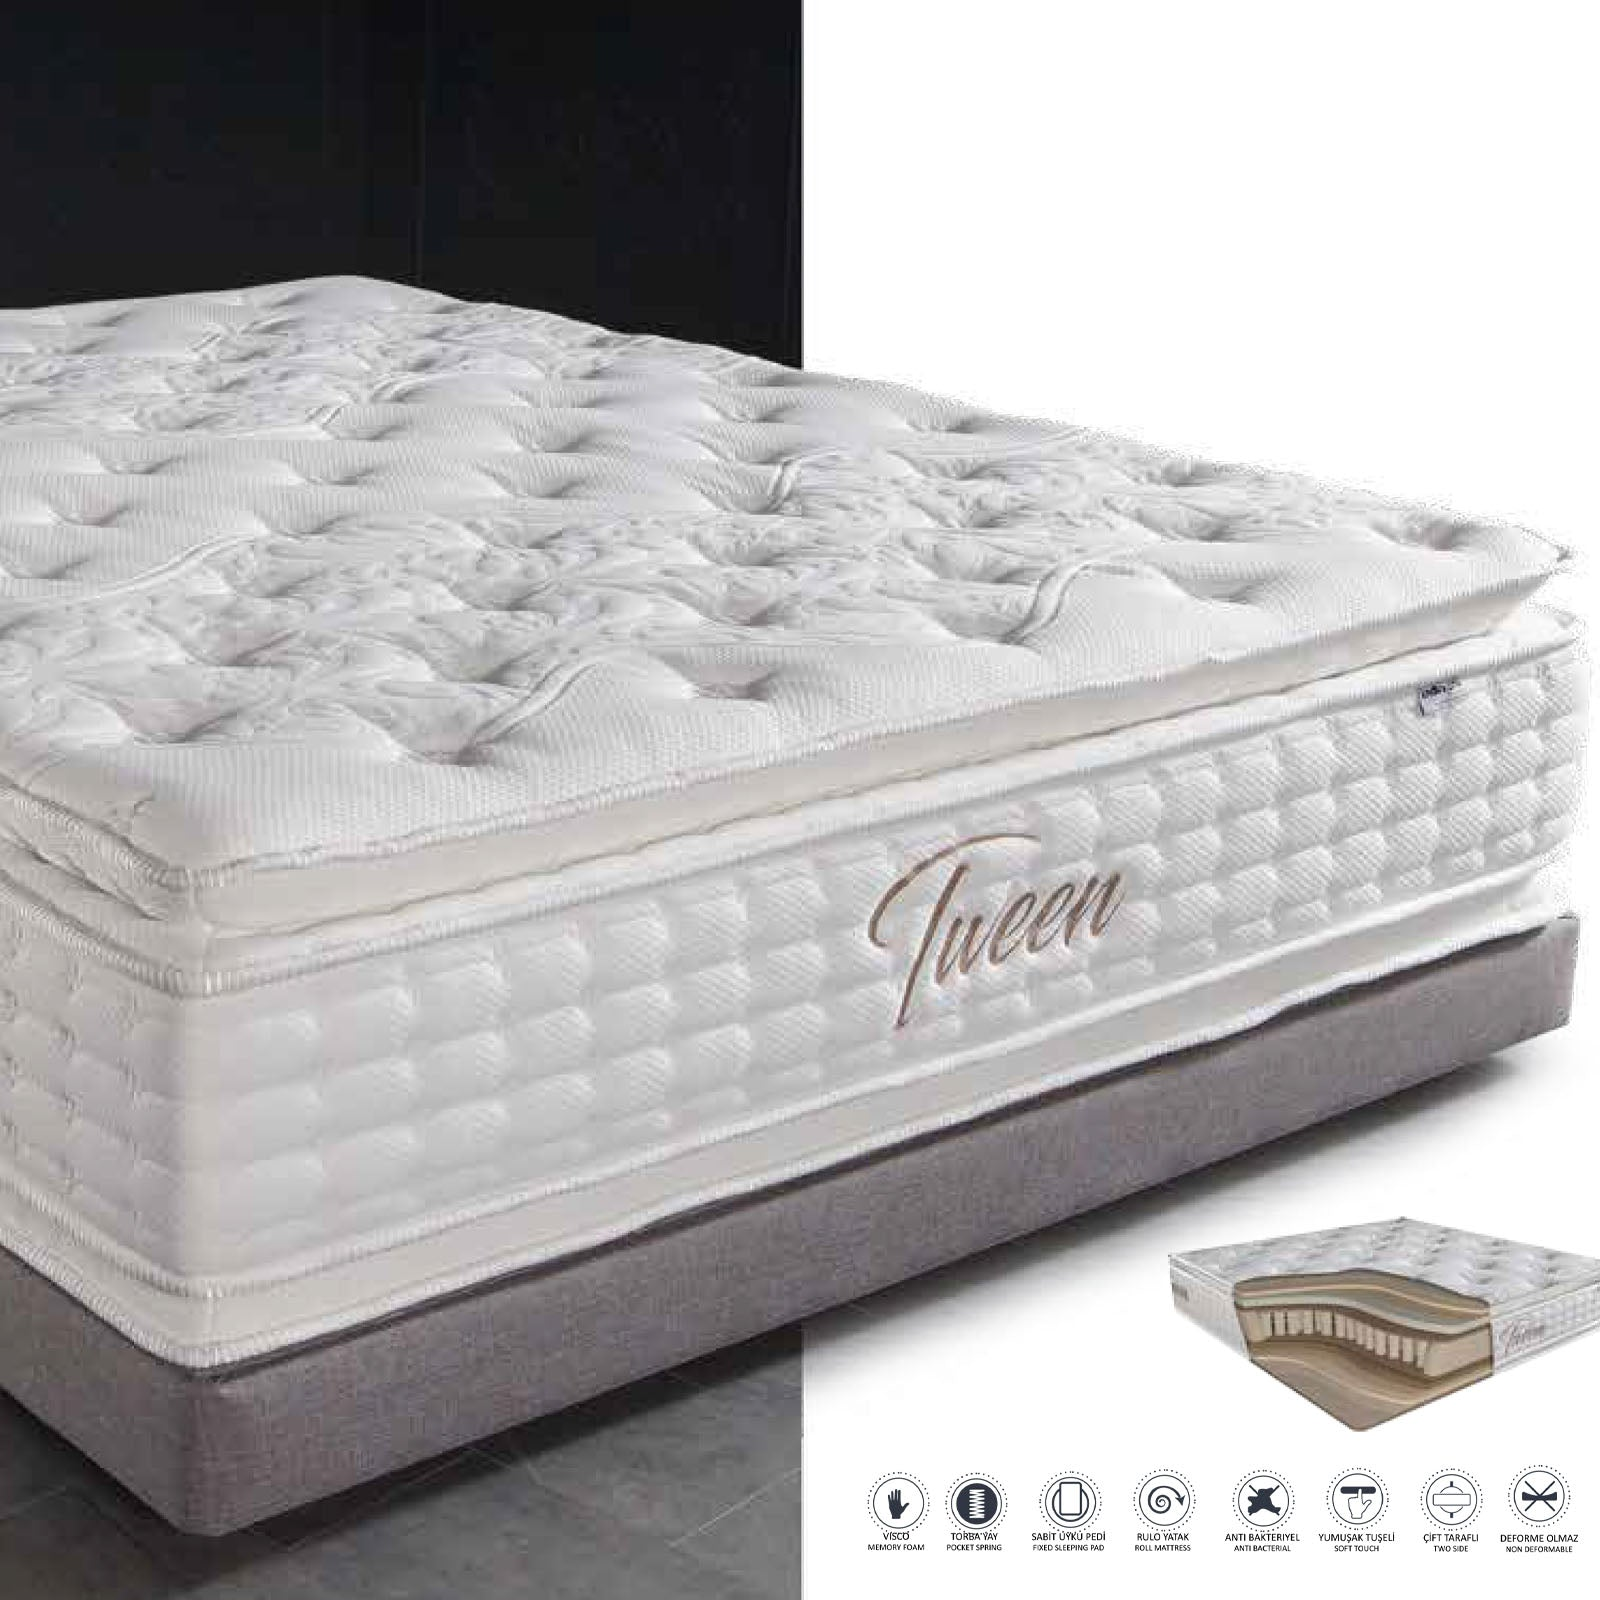 110x200 CM Indivani TWEEN  Double Side mattress  TWEEN-110 -  110x200 سم مرتبة إنديفاني توين مزدوجة الجانب - Shop Online Furniture and Home Decor Store in Dubai, UAE at ebarza